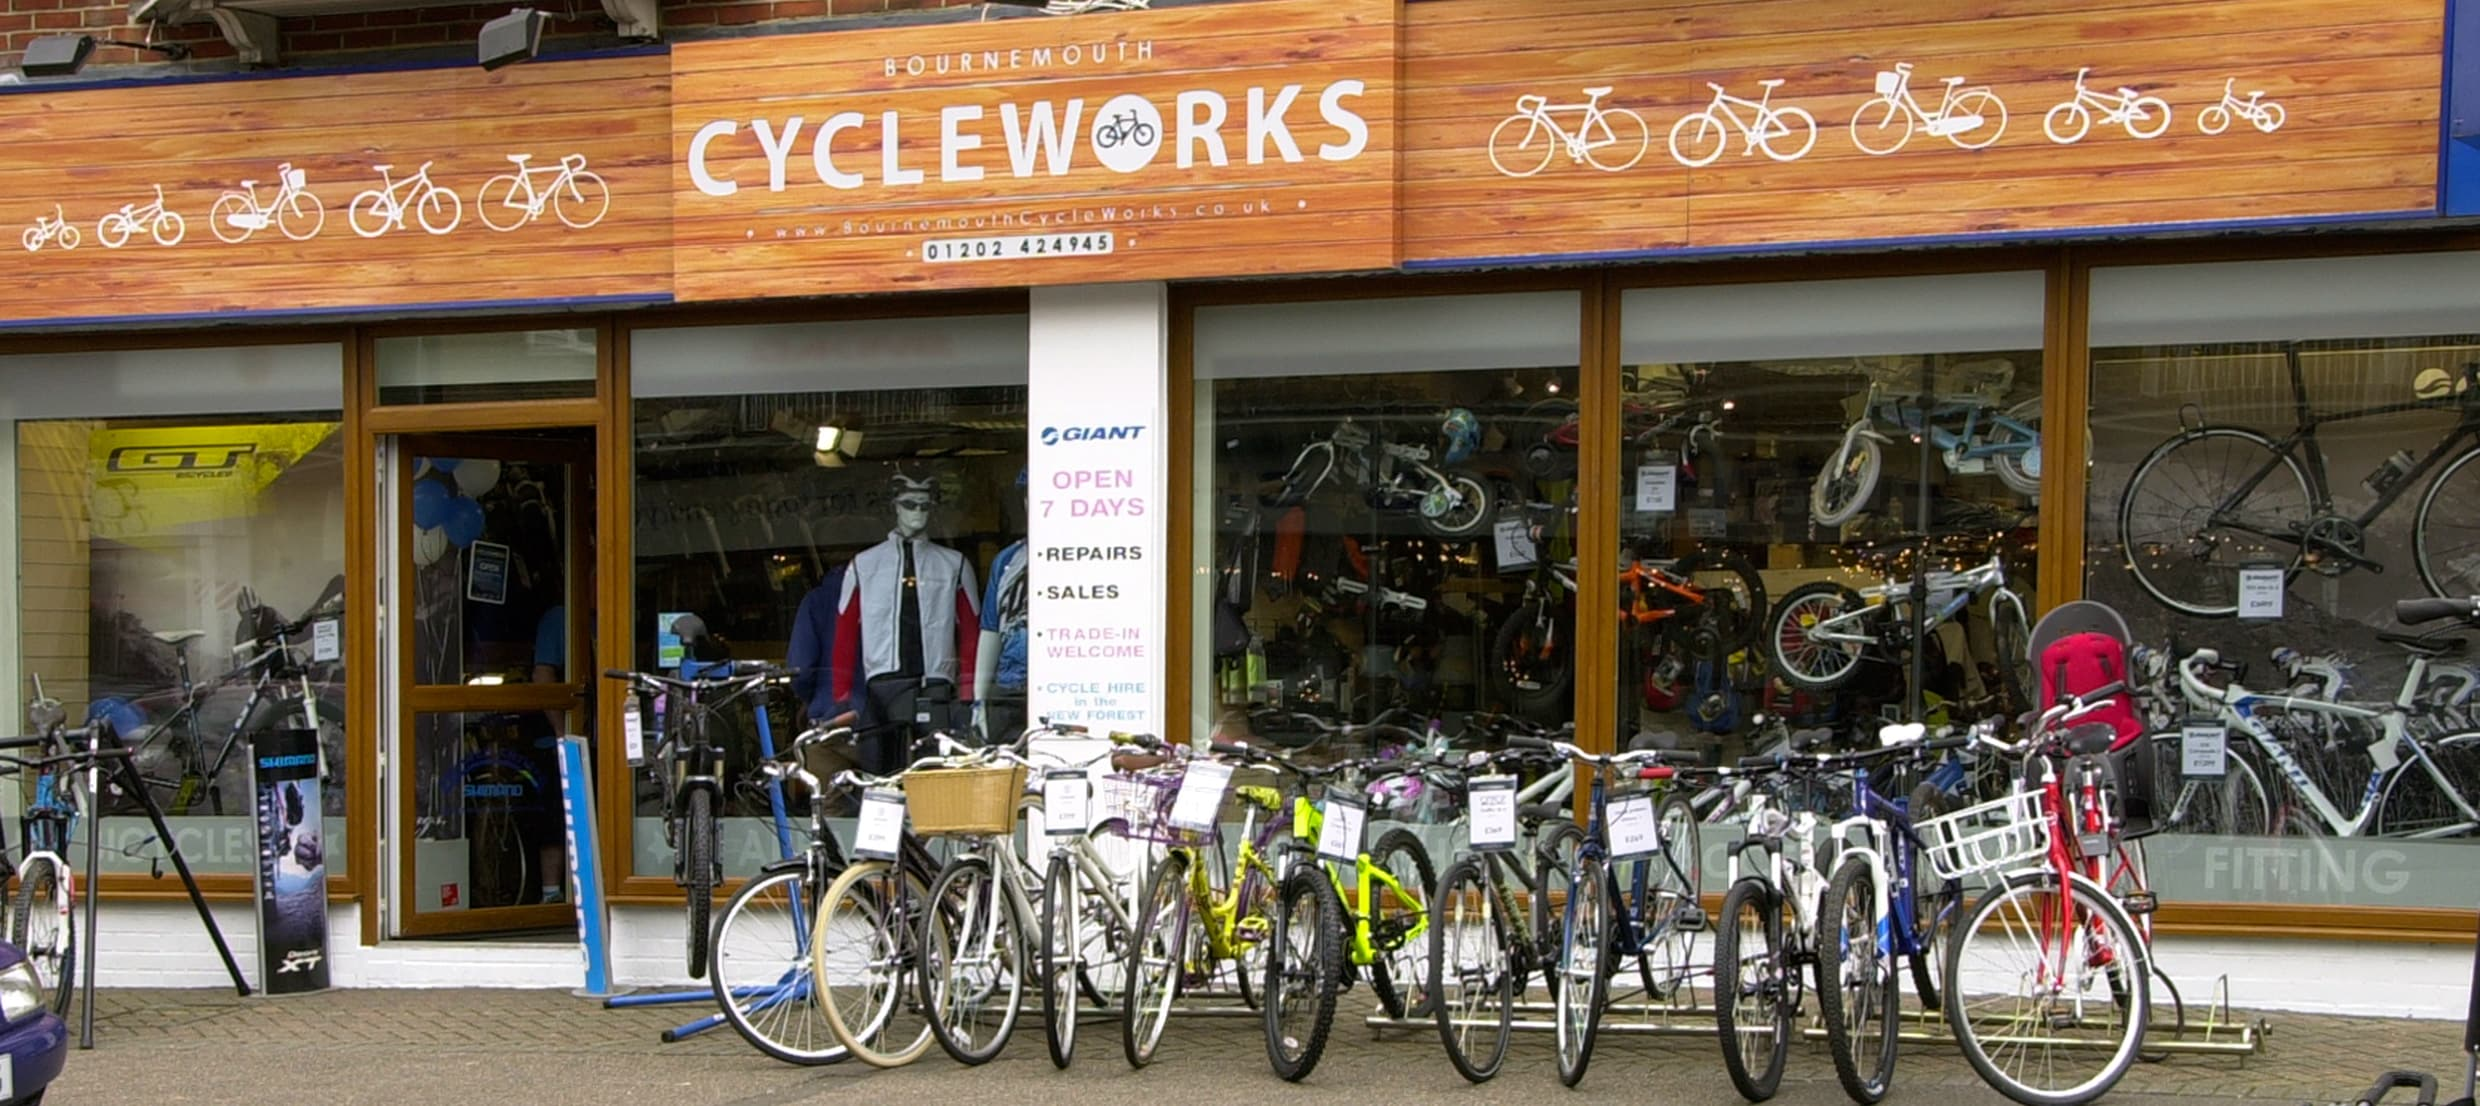 Cycle shops online uk